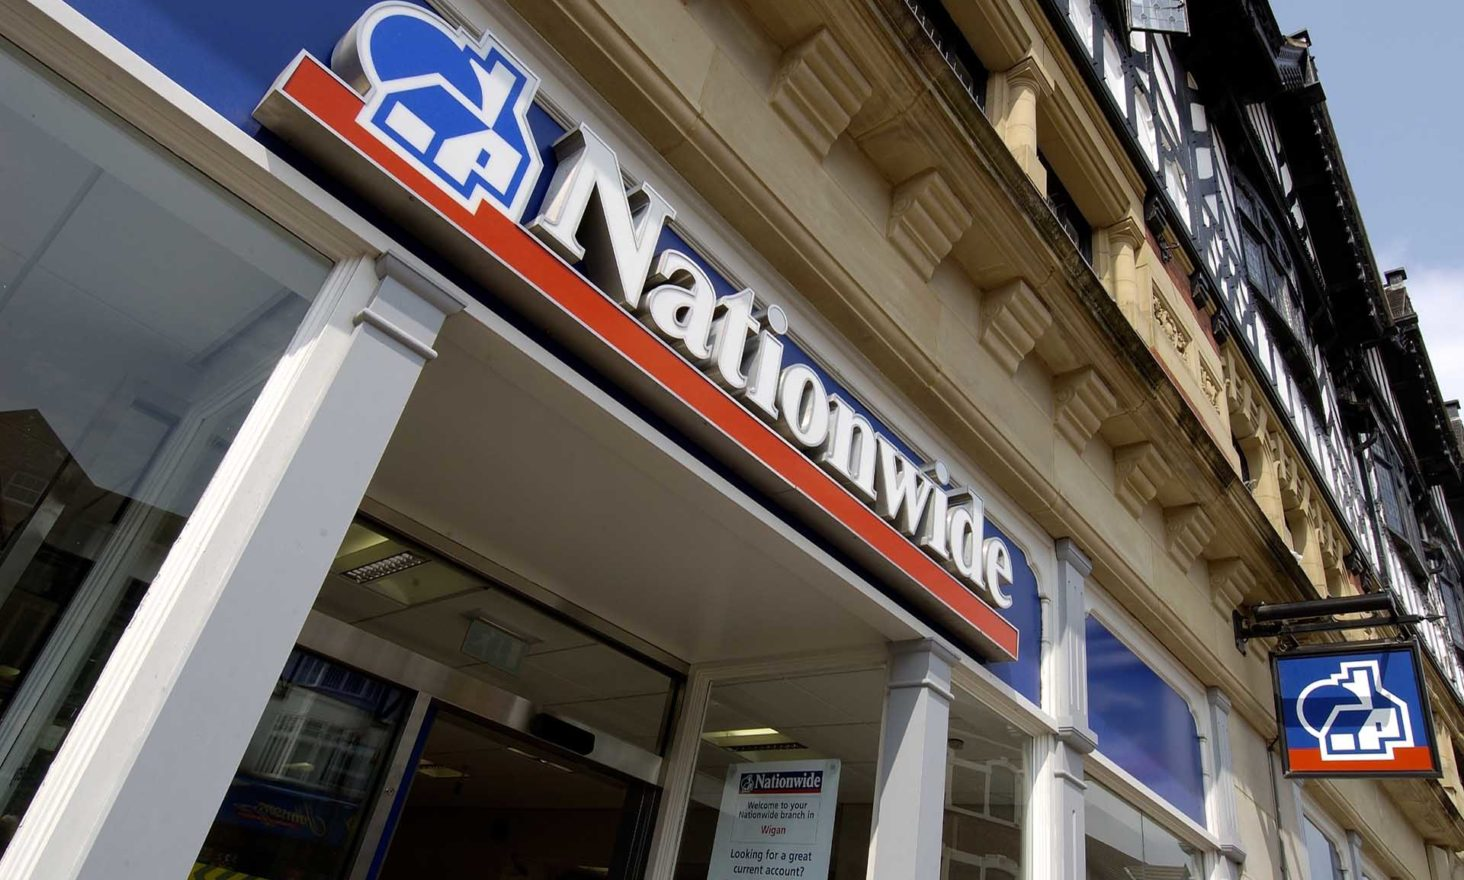 Coinbase Announce They Will No Longer Accept Deposits From Nationwide Bank